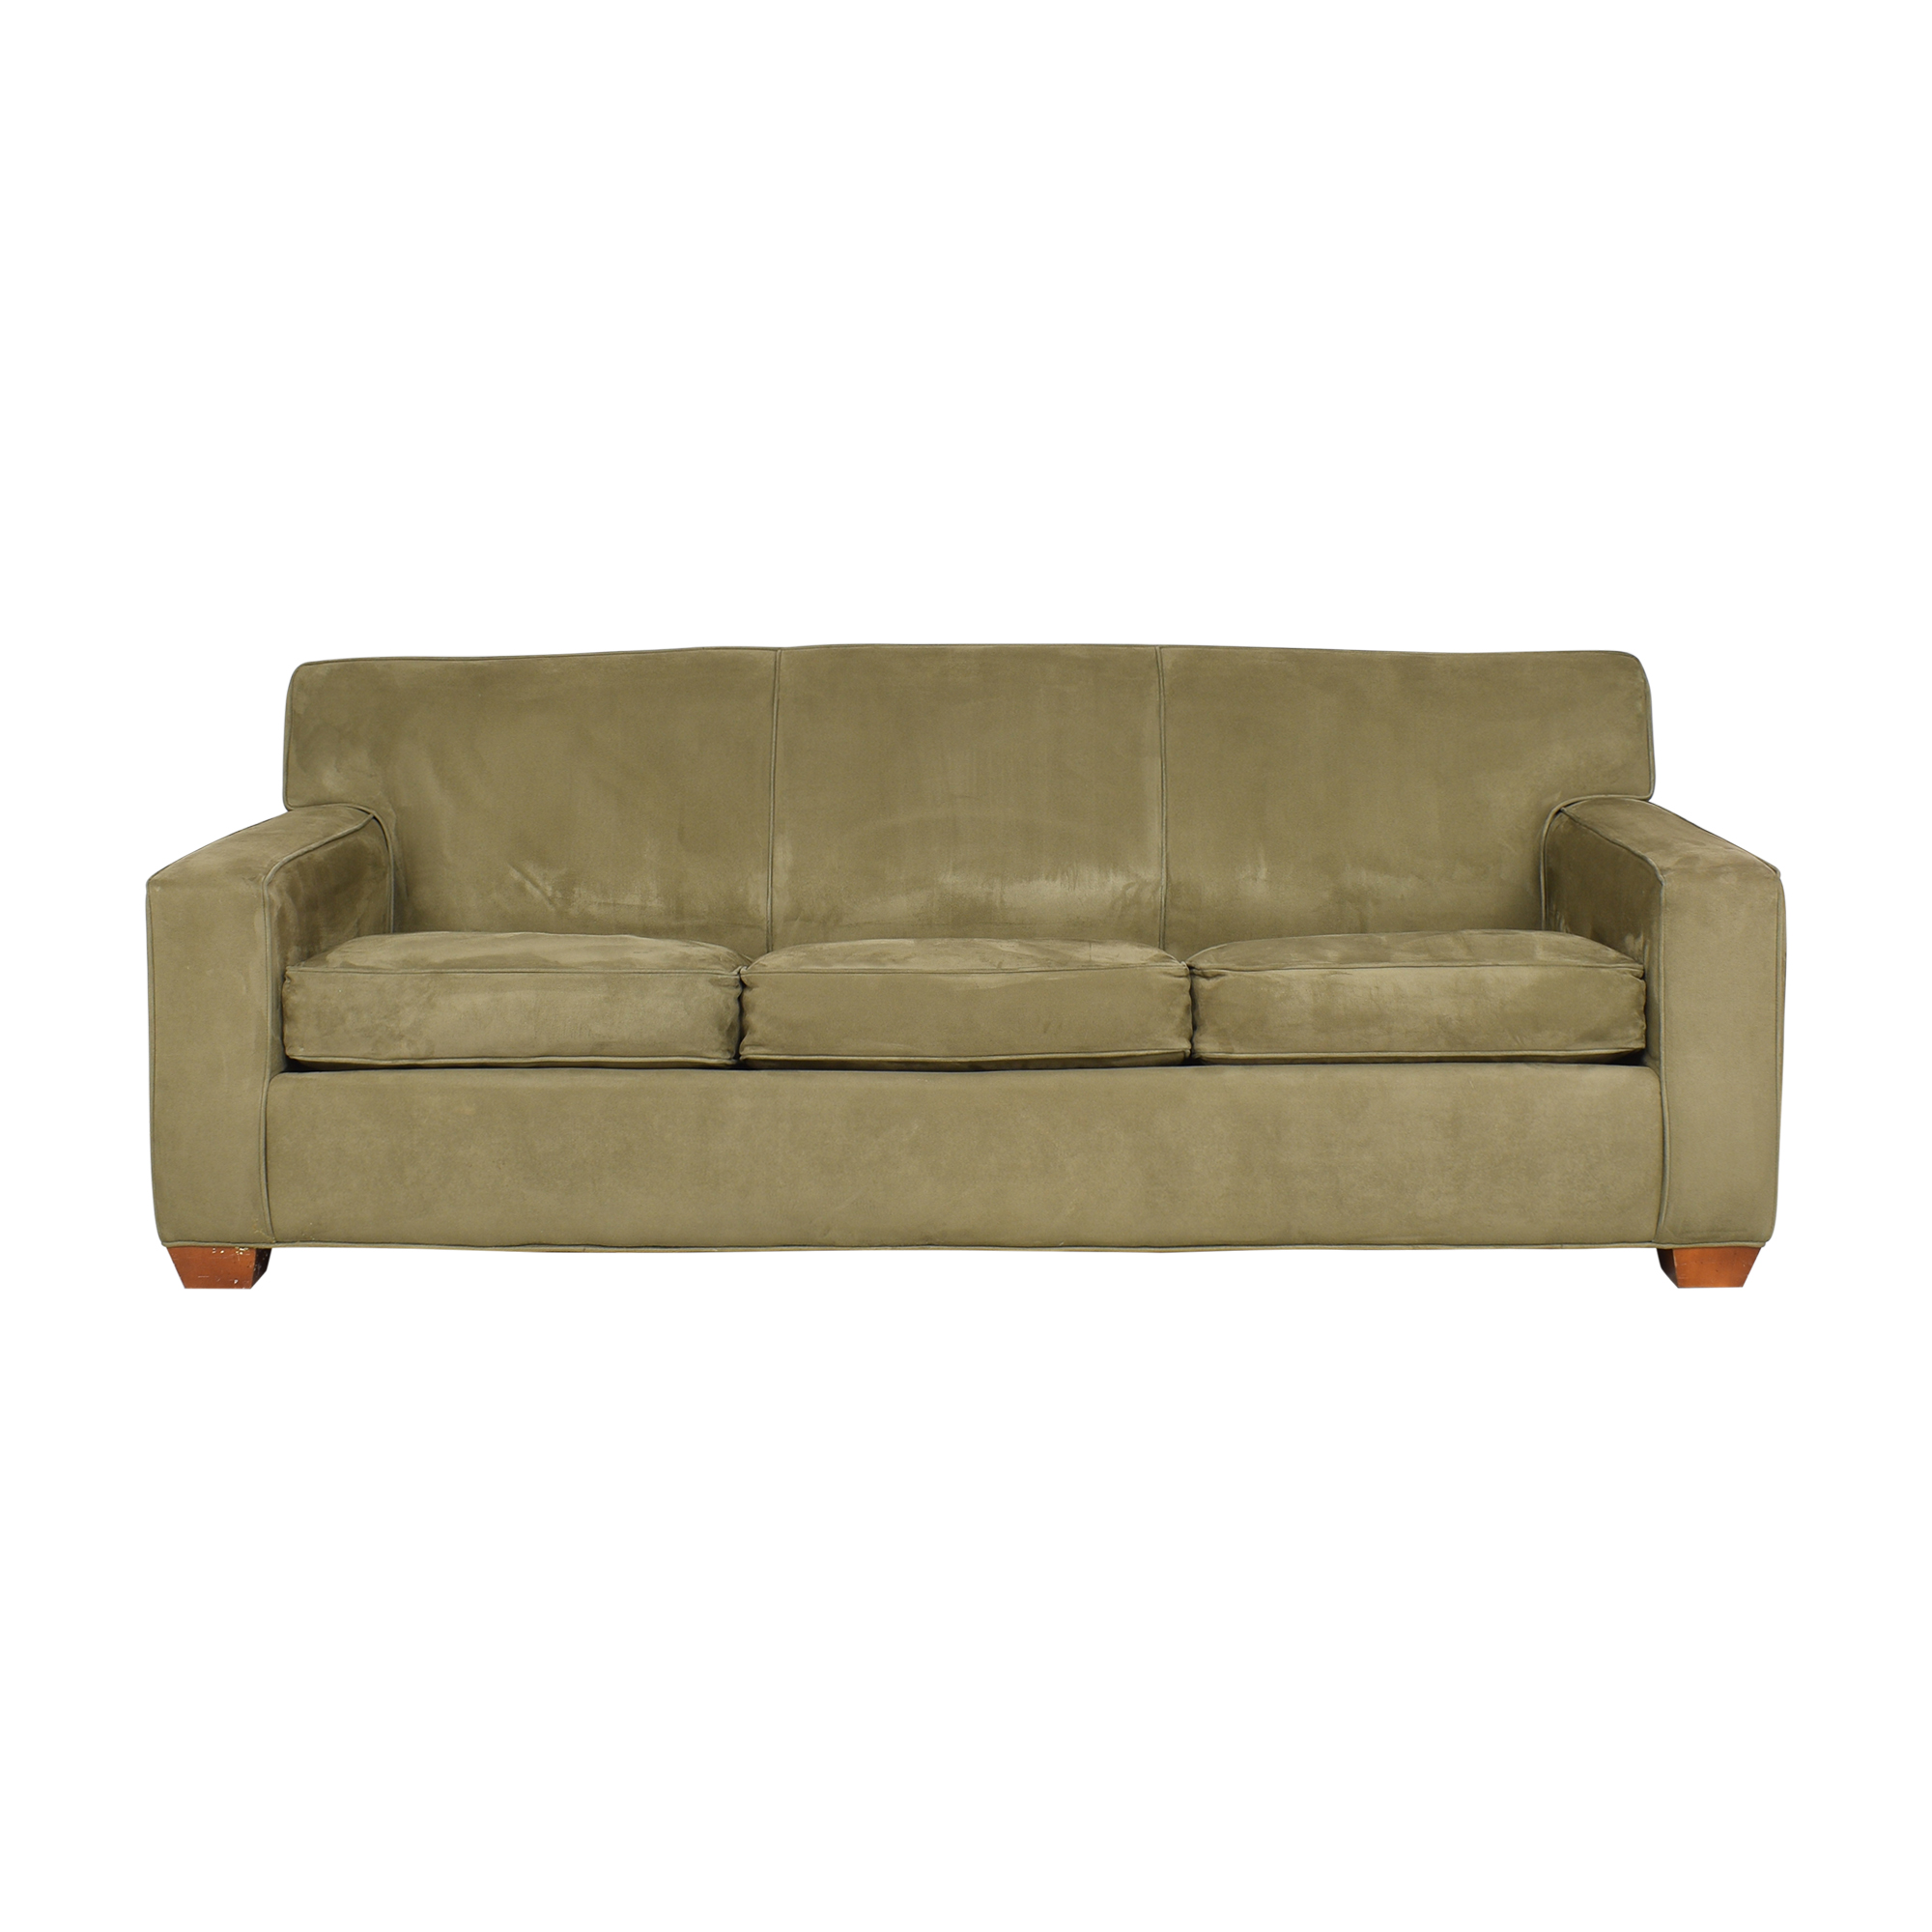 Crate & Barrel Crate & Barrel Three Cushion Sleeper Sofa  coupon